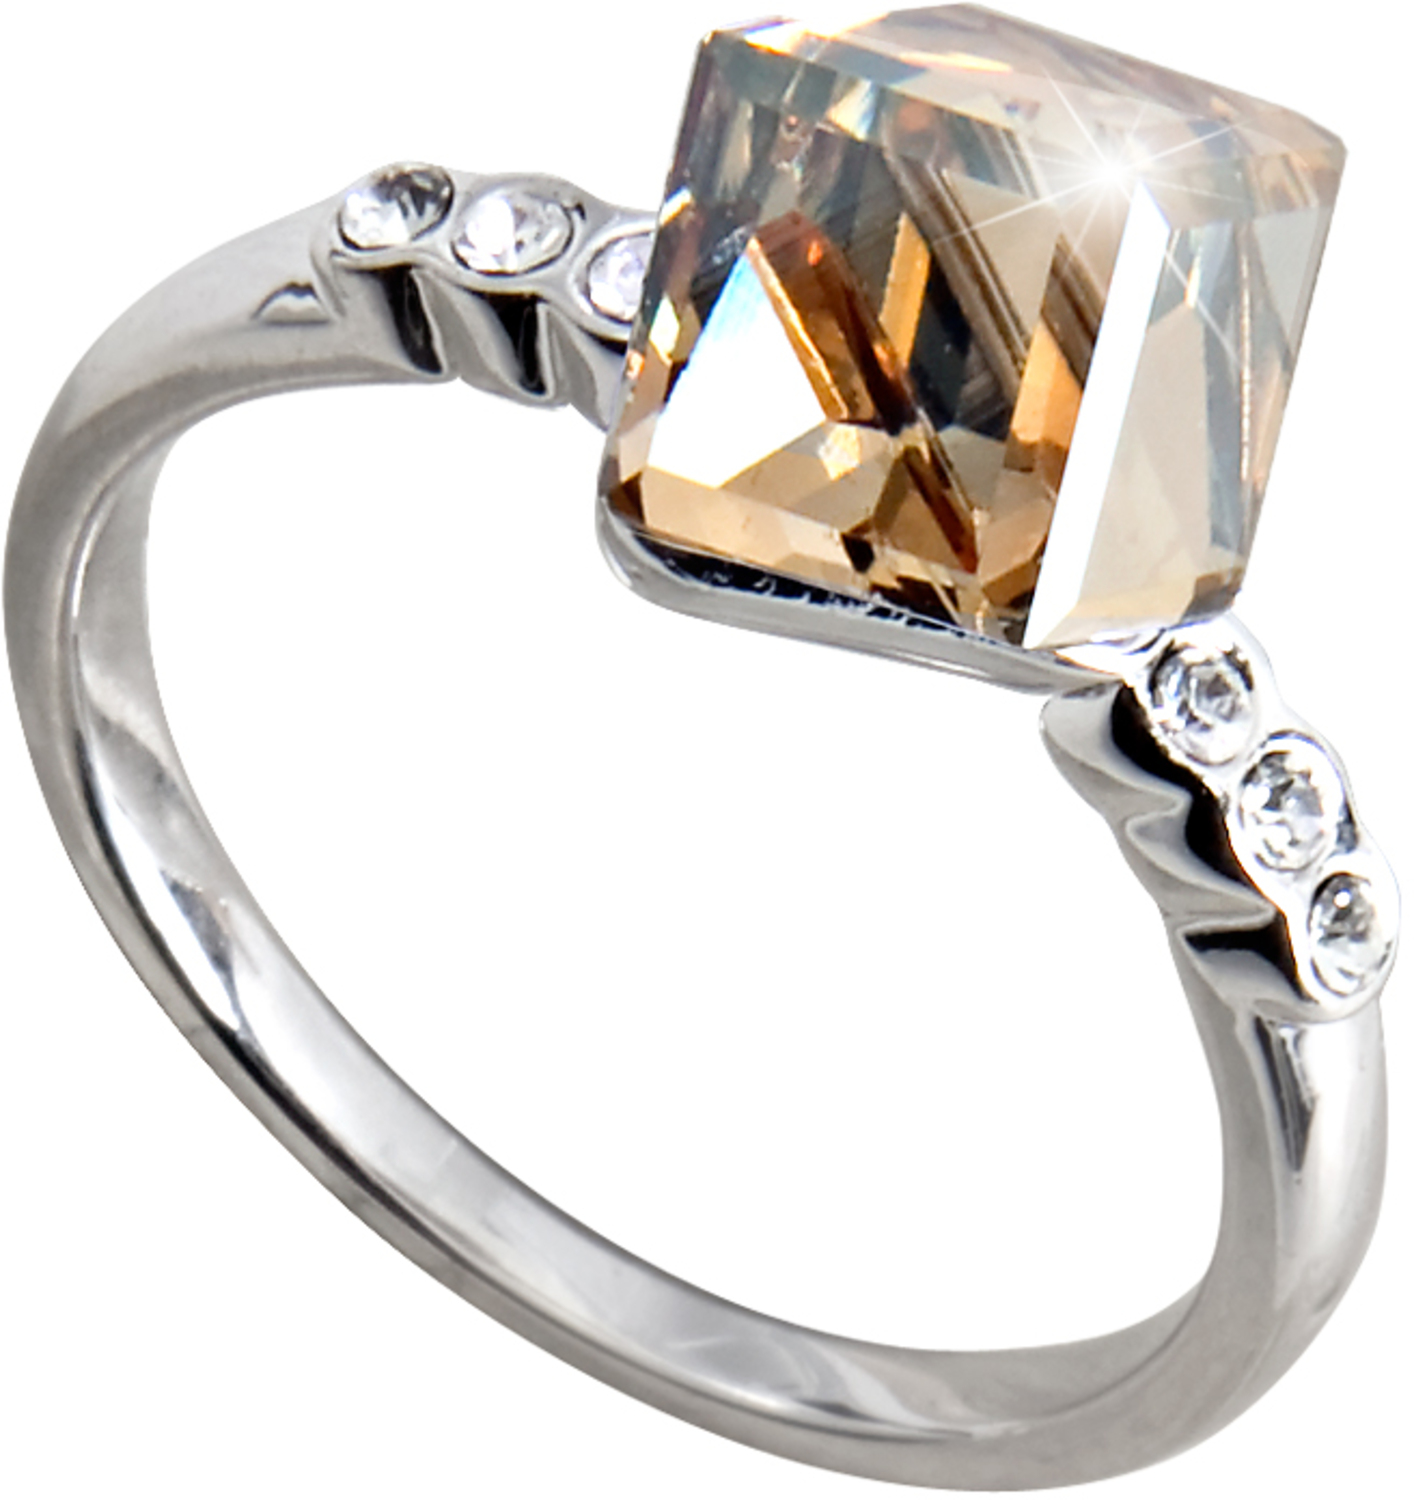 "Nicole Crystal Golden Shadow by H2Z Made with Swarovski Elements - Nicole Crystal Golden Shadow - Size 7 Ring with 0.25"" Crystal made from Swarovski Elements"